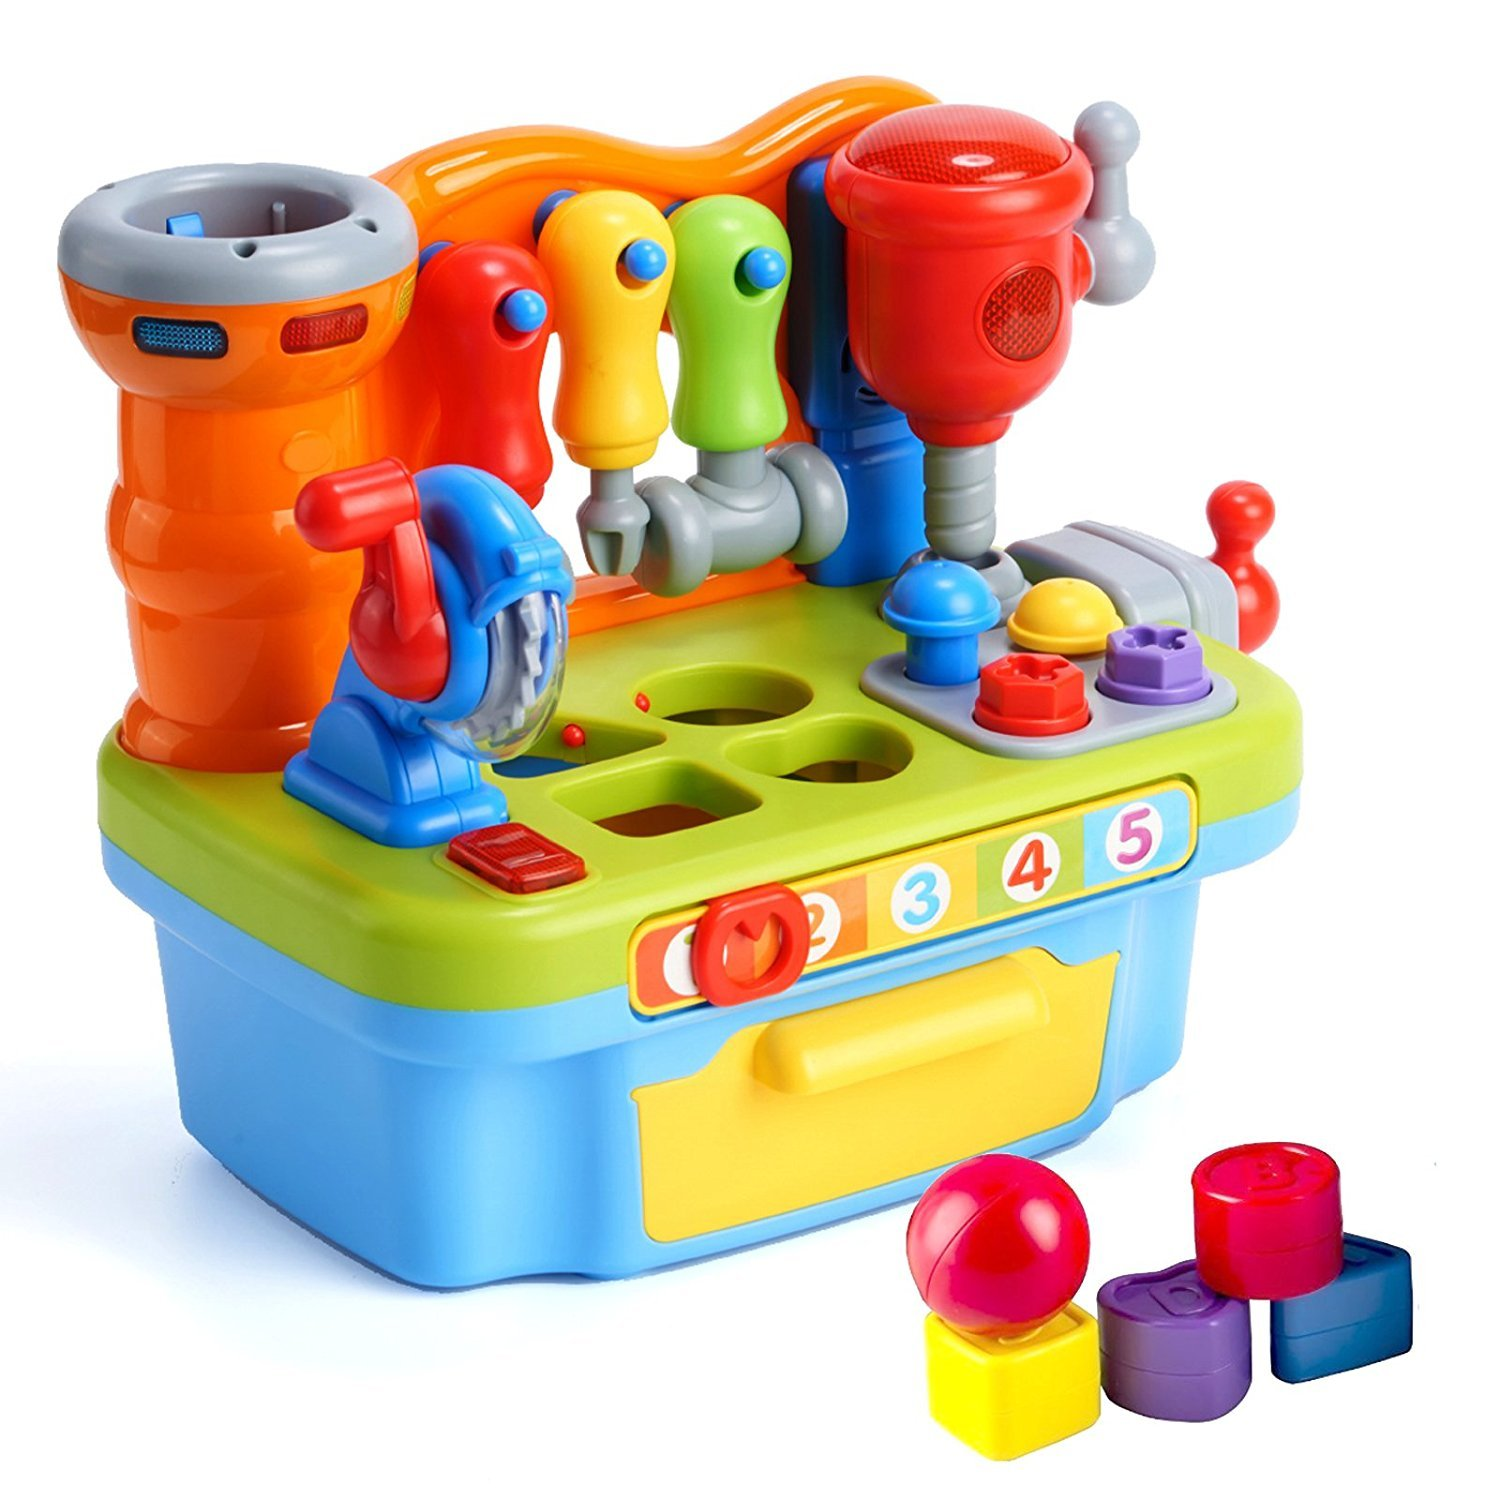 Woby Multifunctional Musical Learning Tool Workbench Toy Set This Colorful That Comes With Tools Is A Good Gift For One Year Old Boy